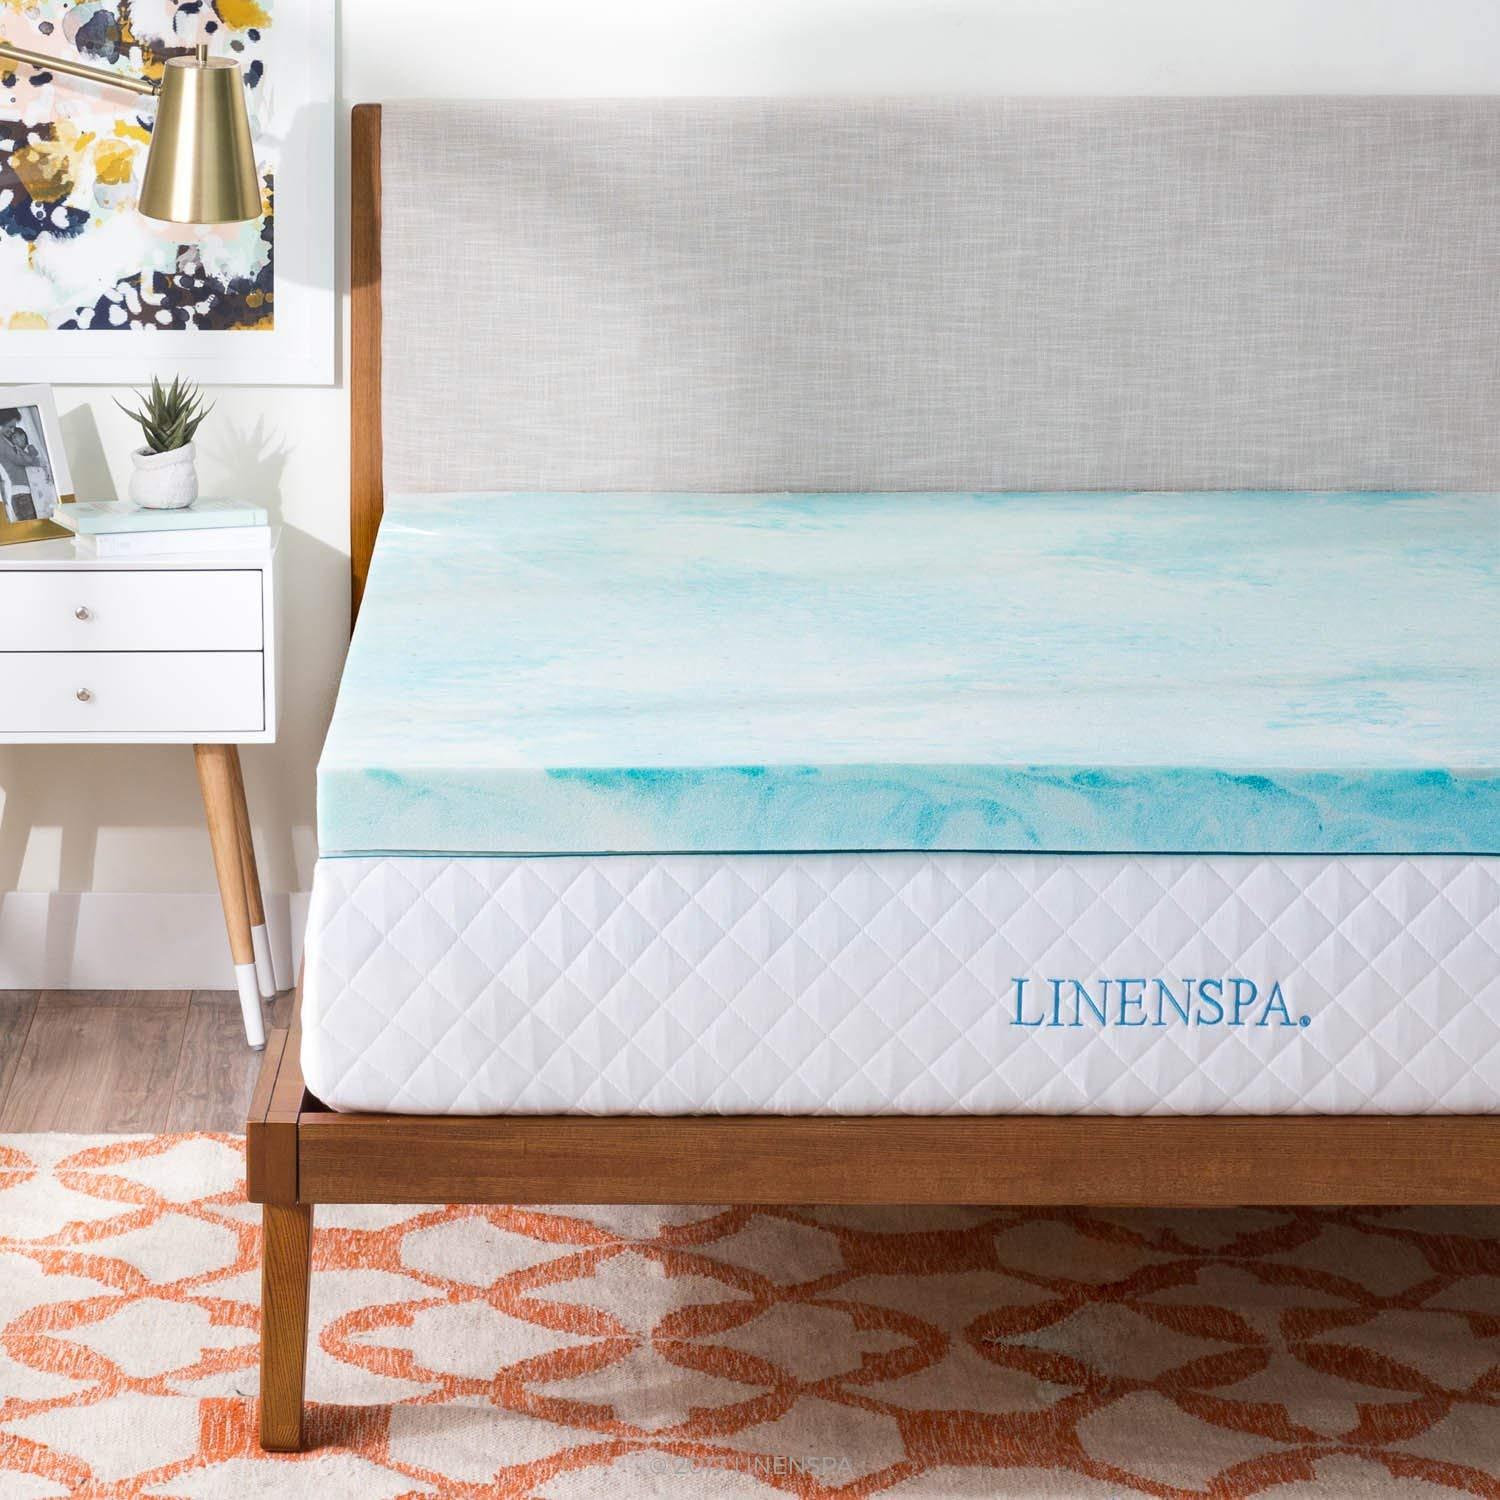 Linenspa Best Mattress Topper for Side Sleepers review by www.dailysleep.org